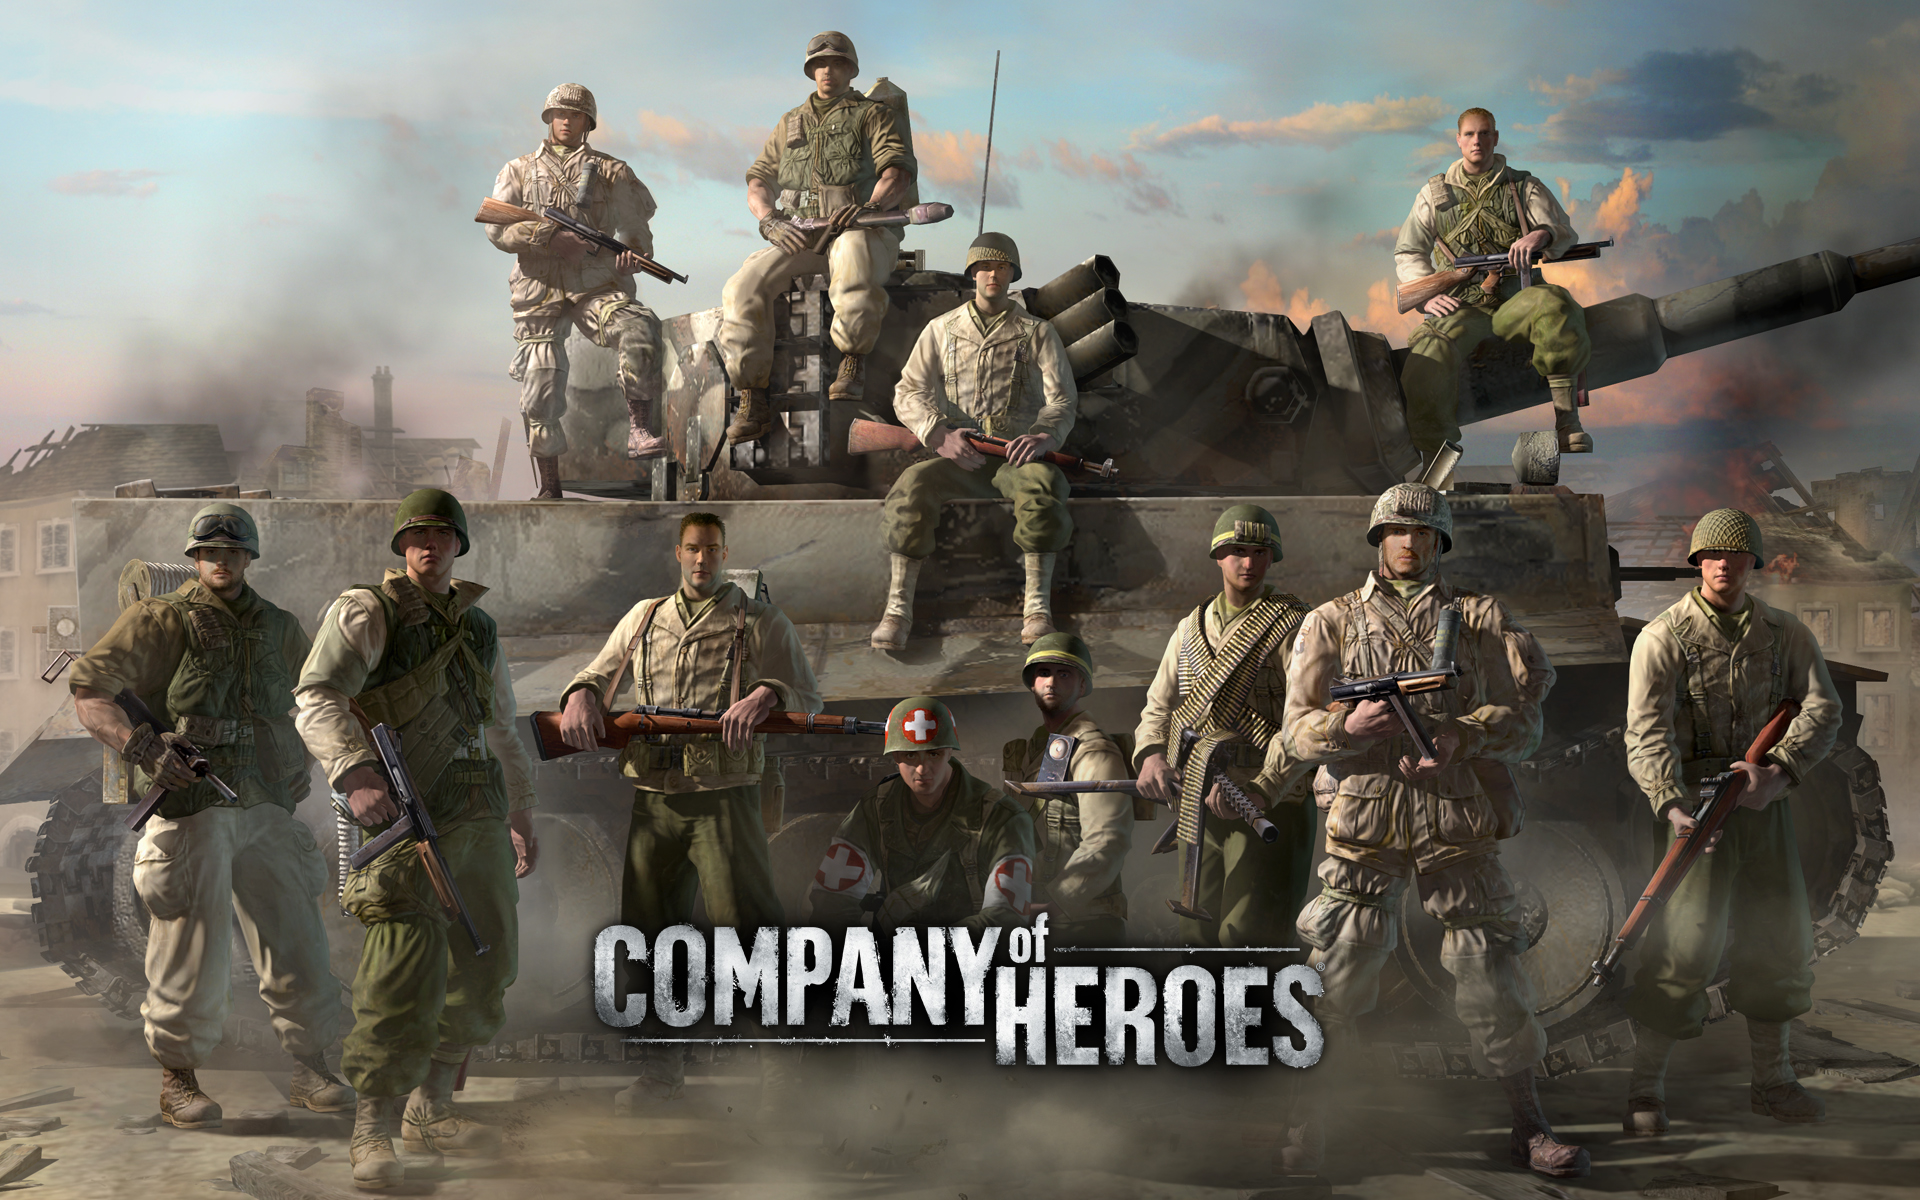 images company of heroes games 1920x1200